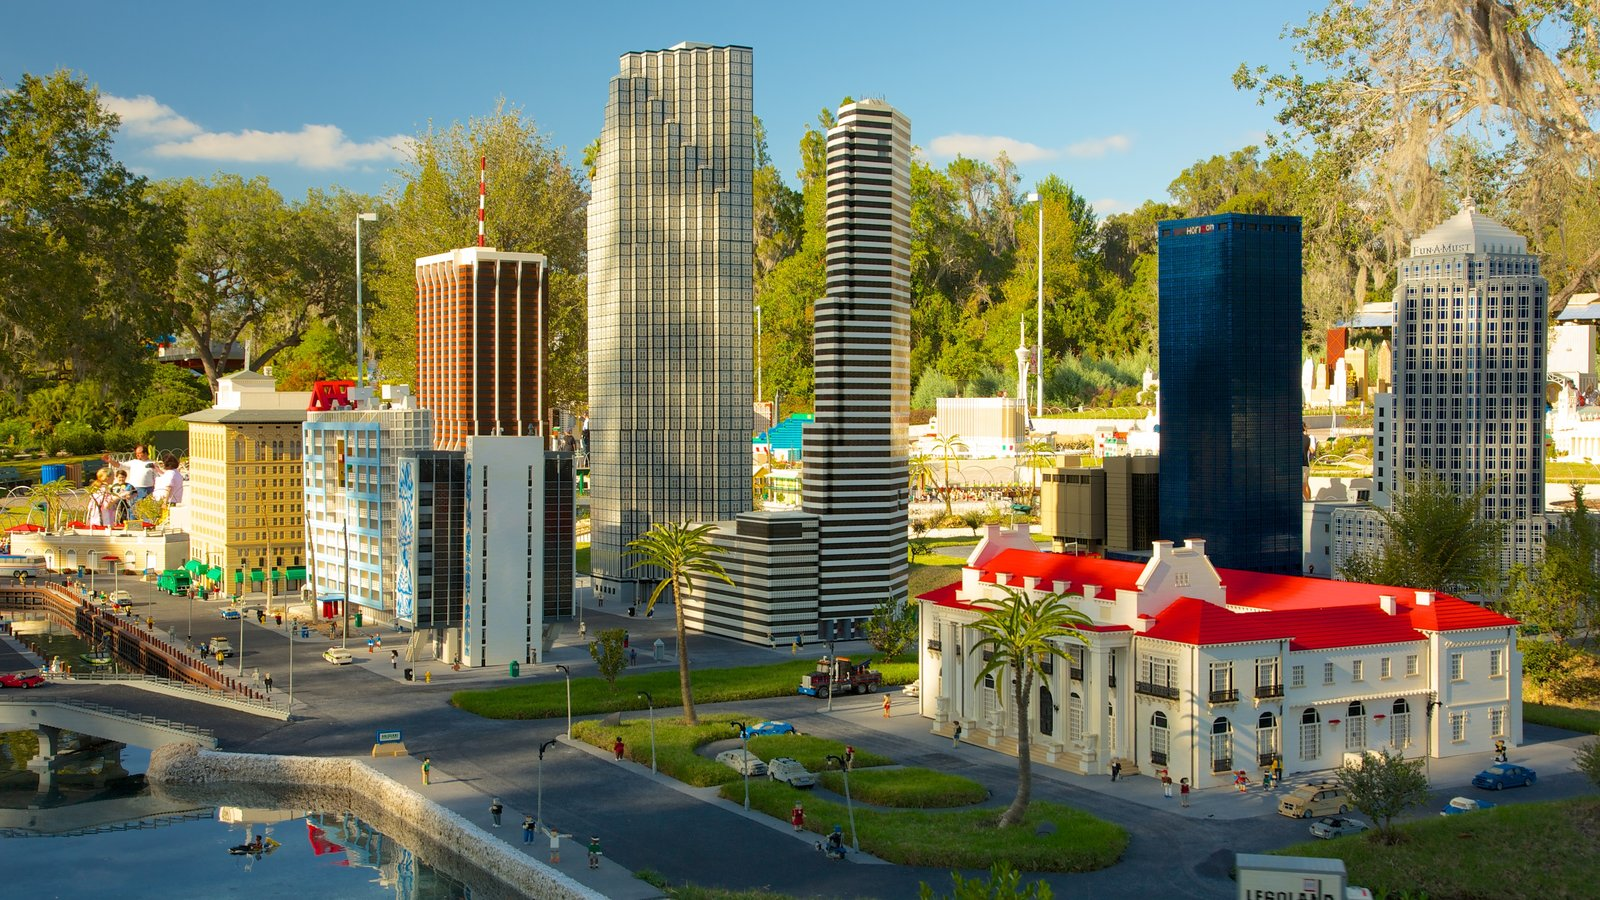 Legoland Florida which includes a pond, a river or creek and rides